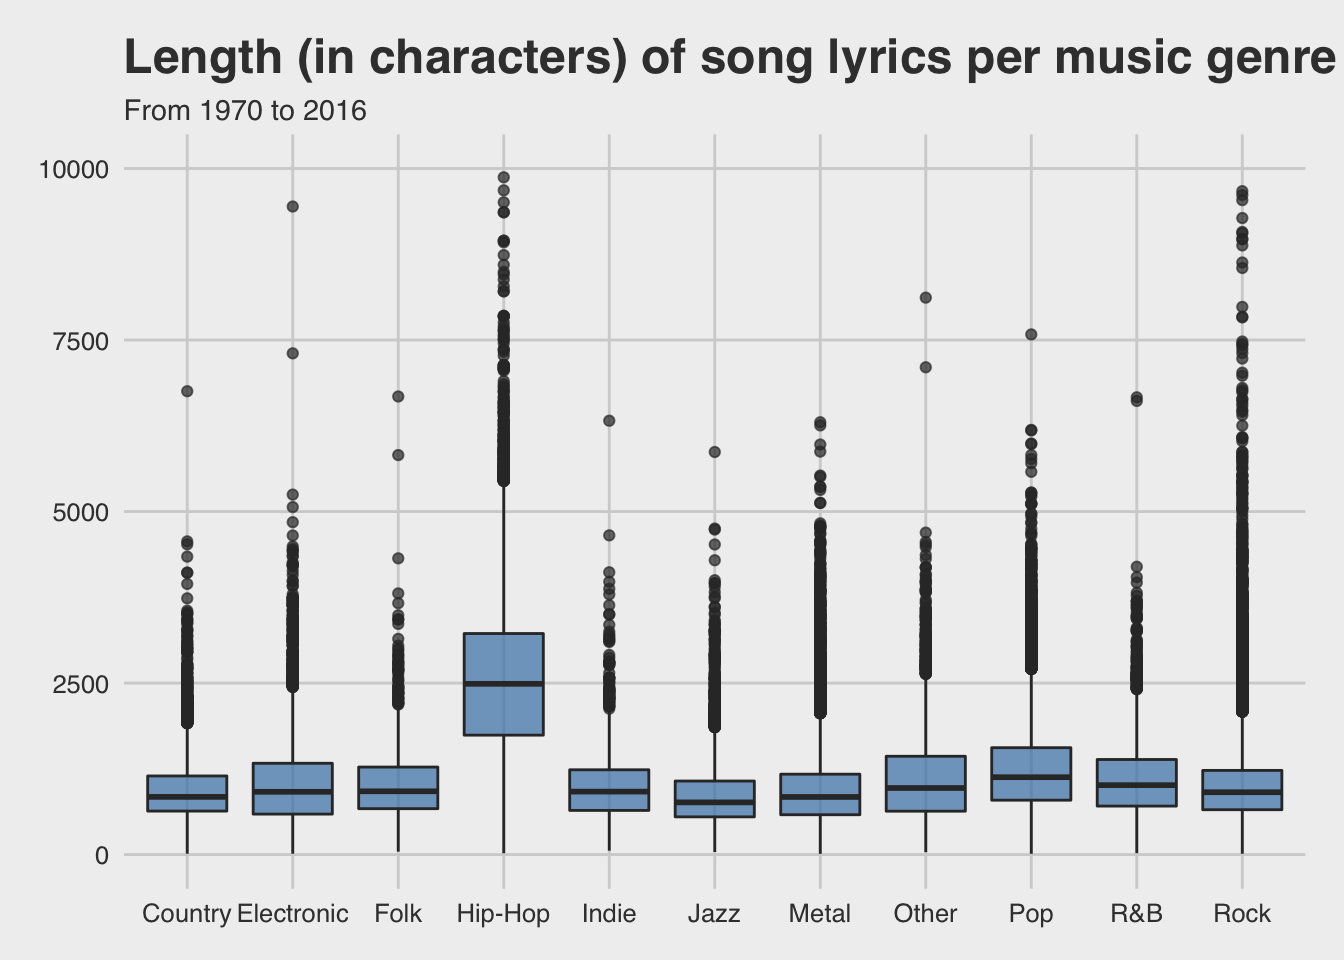 Text analytics & topic modelling on music genres song lyrics